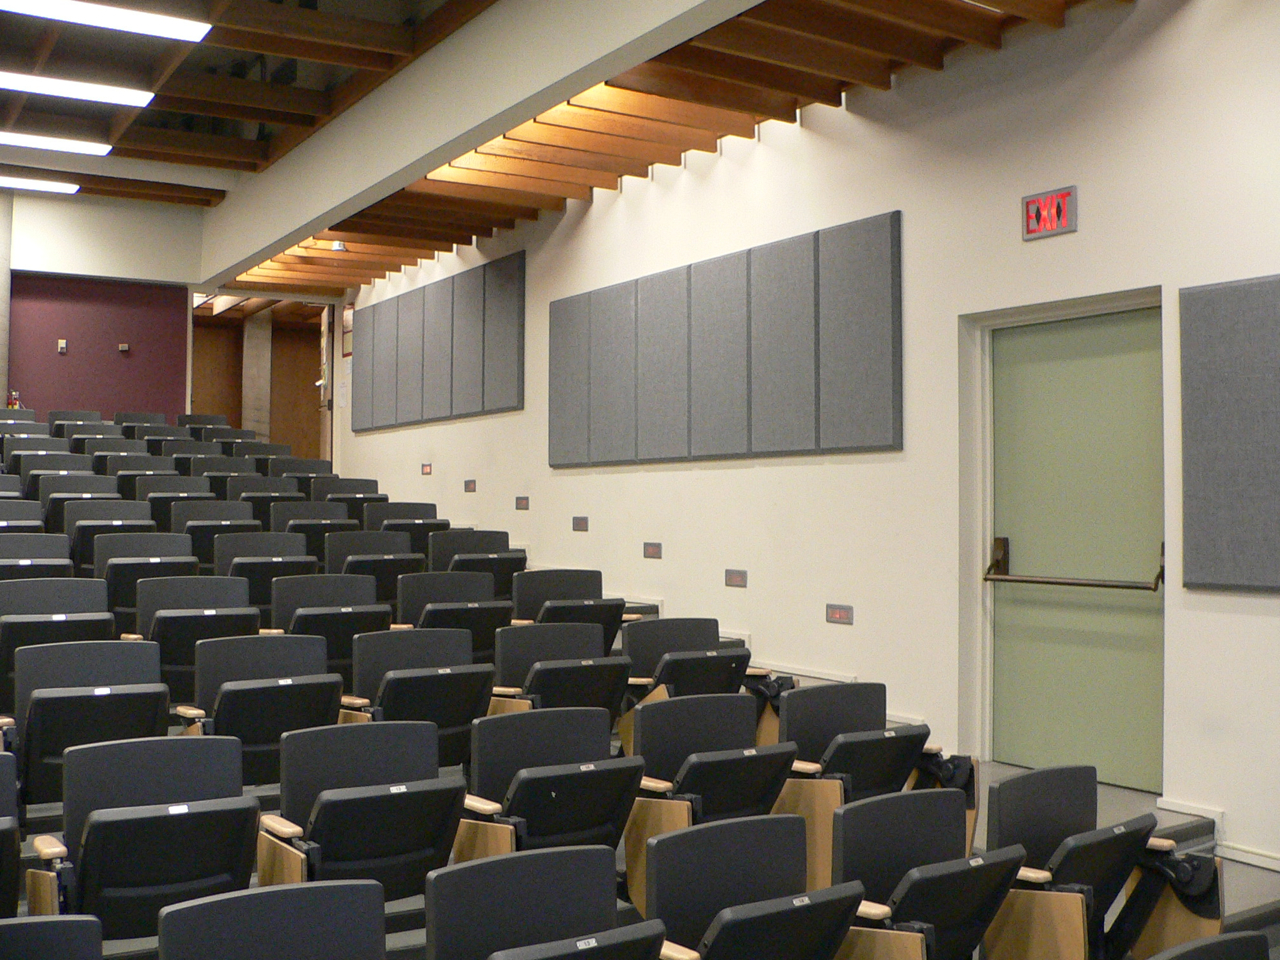 Broadway panels gray wall acoustics SFU lecture hall